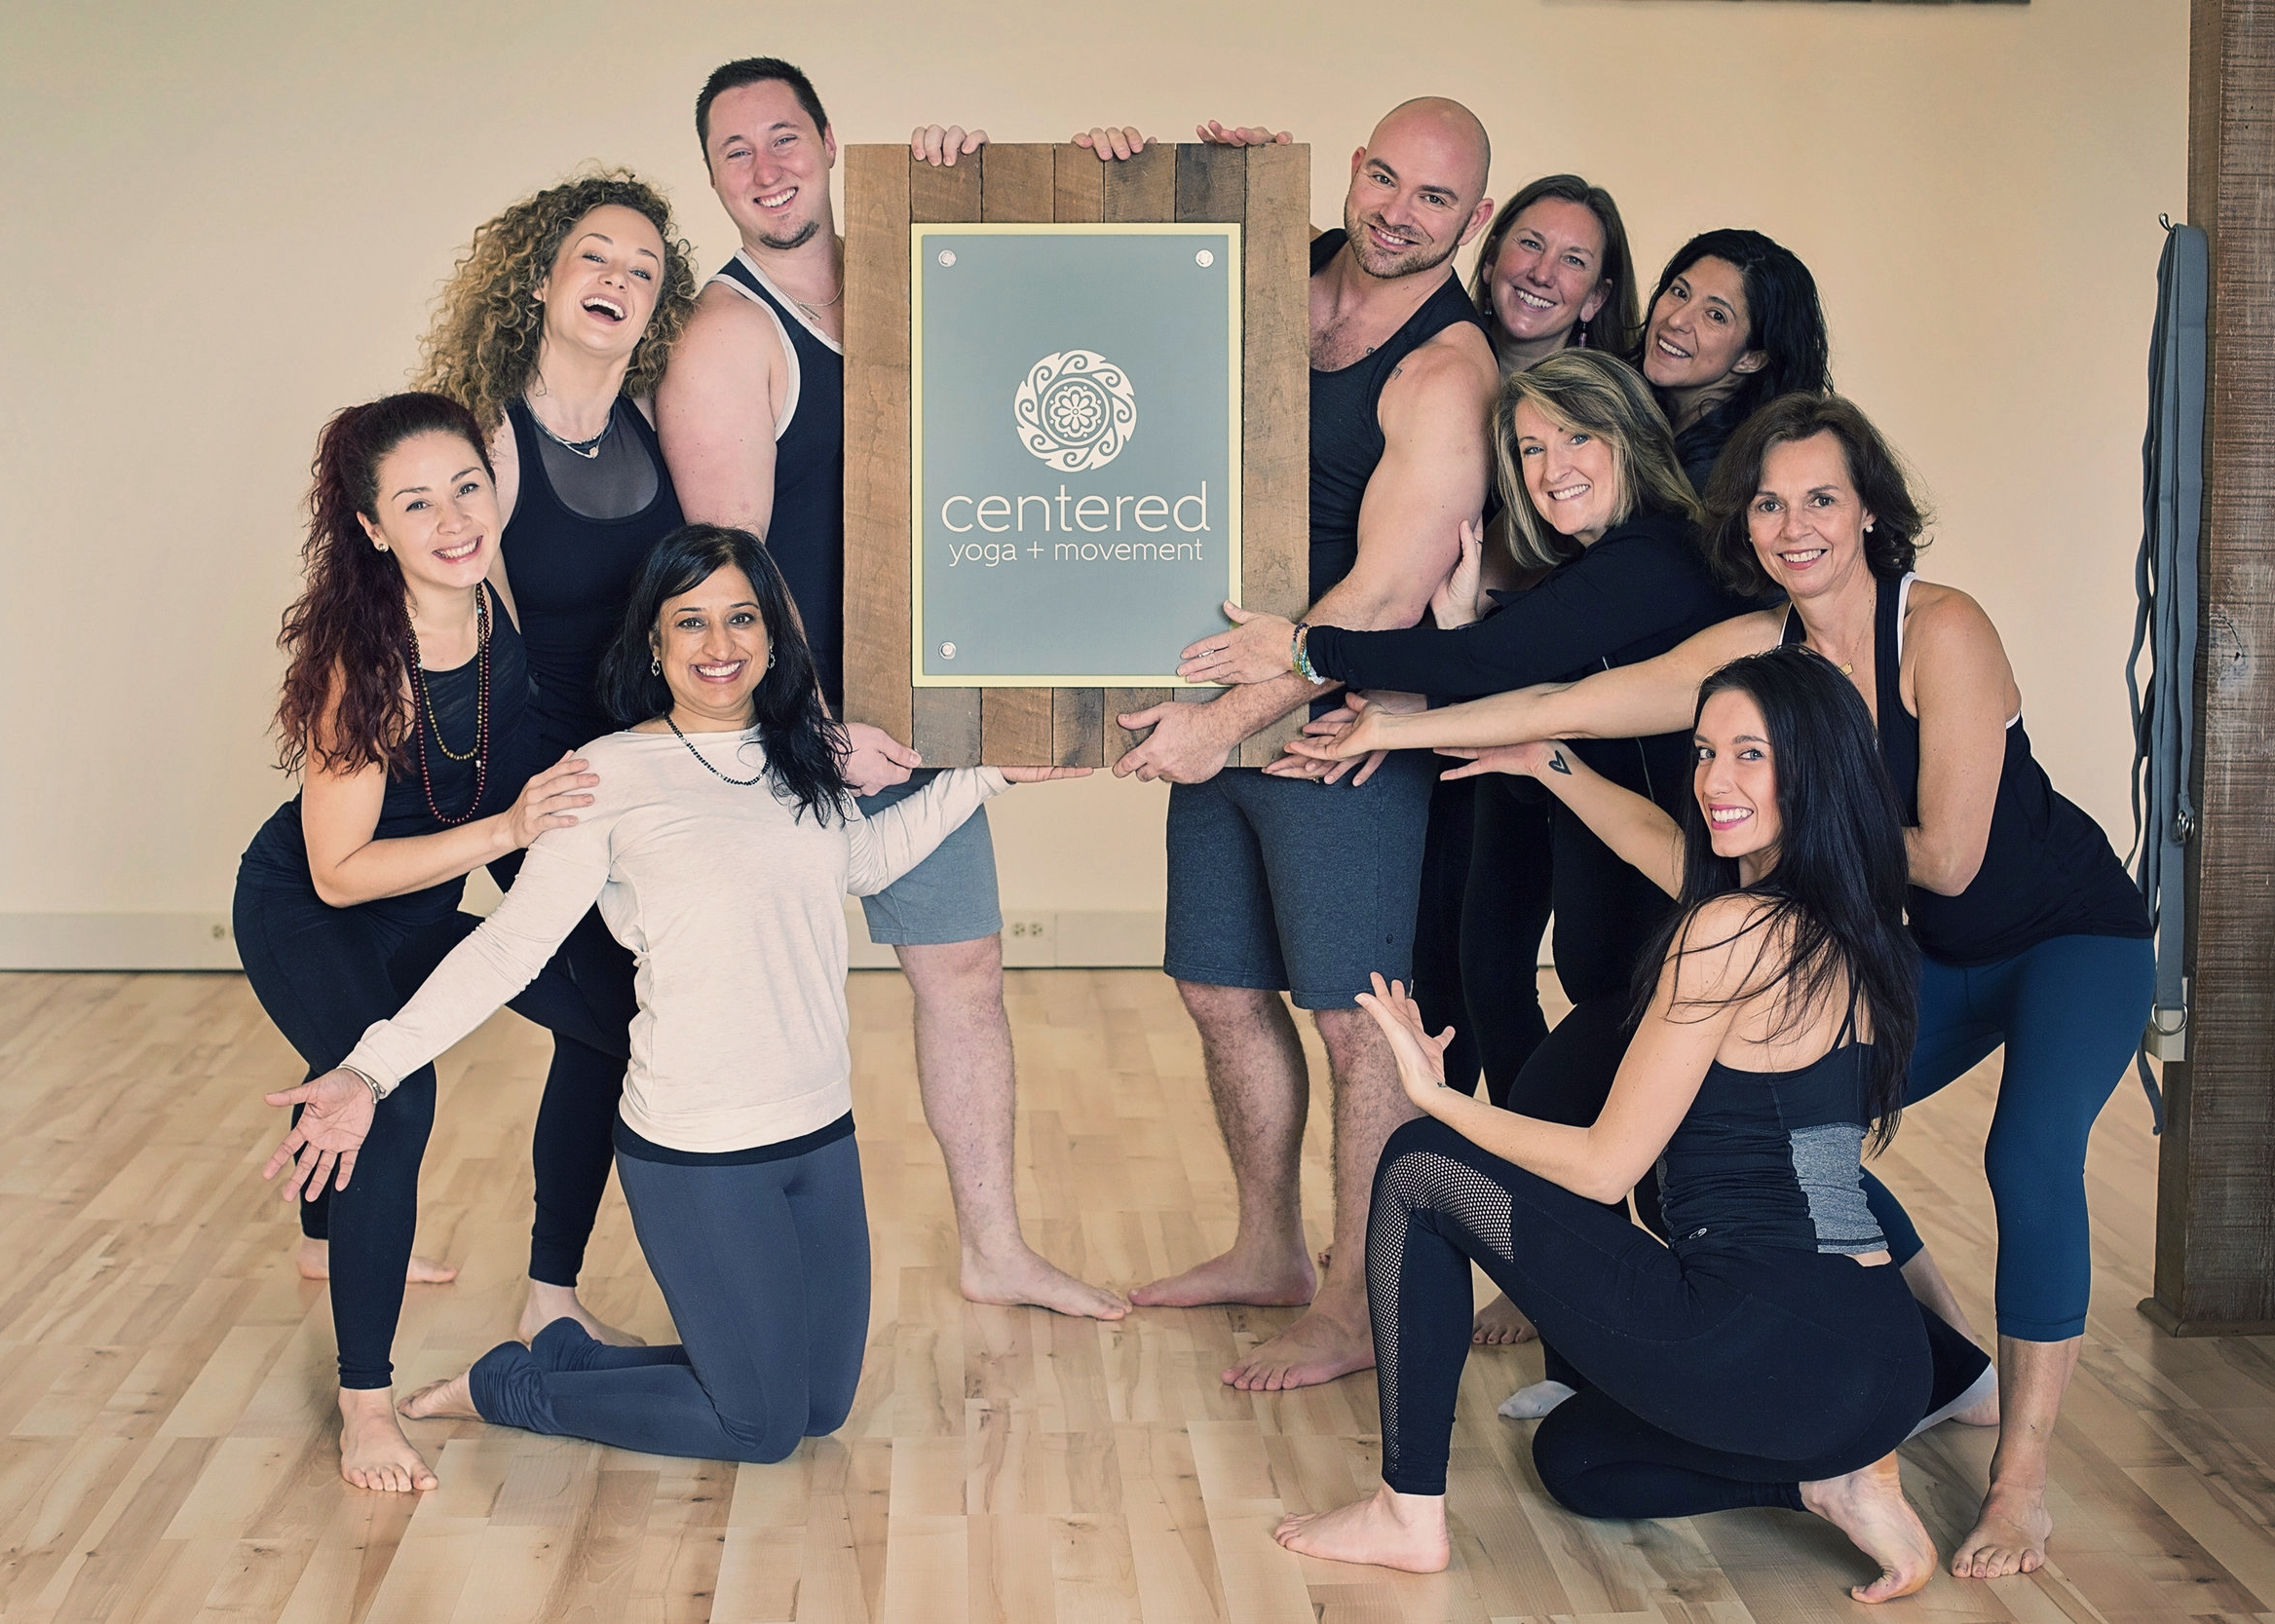 An Interview with Shoma Jha, Owner of Centered Yoga + Movement in Worthington, Ohio